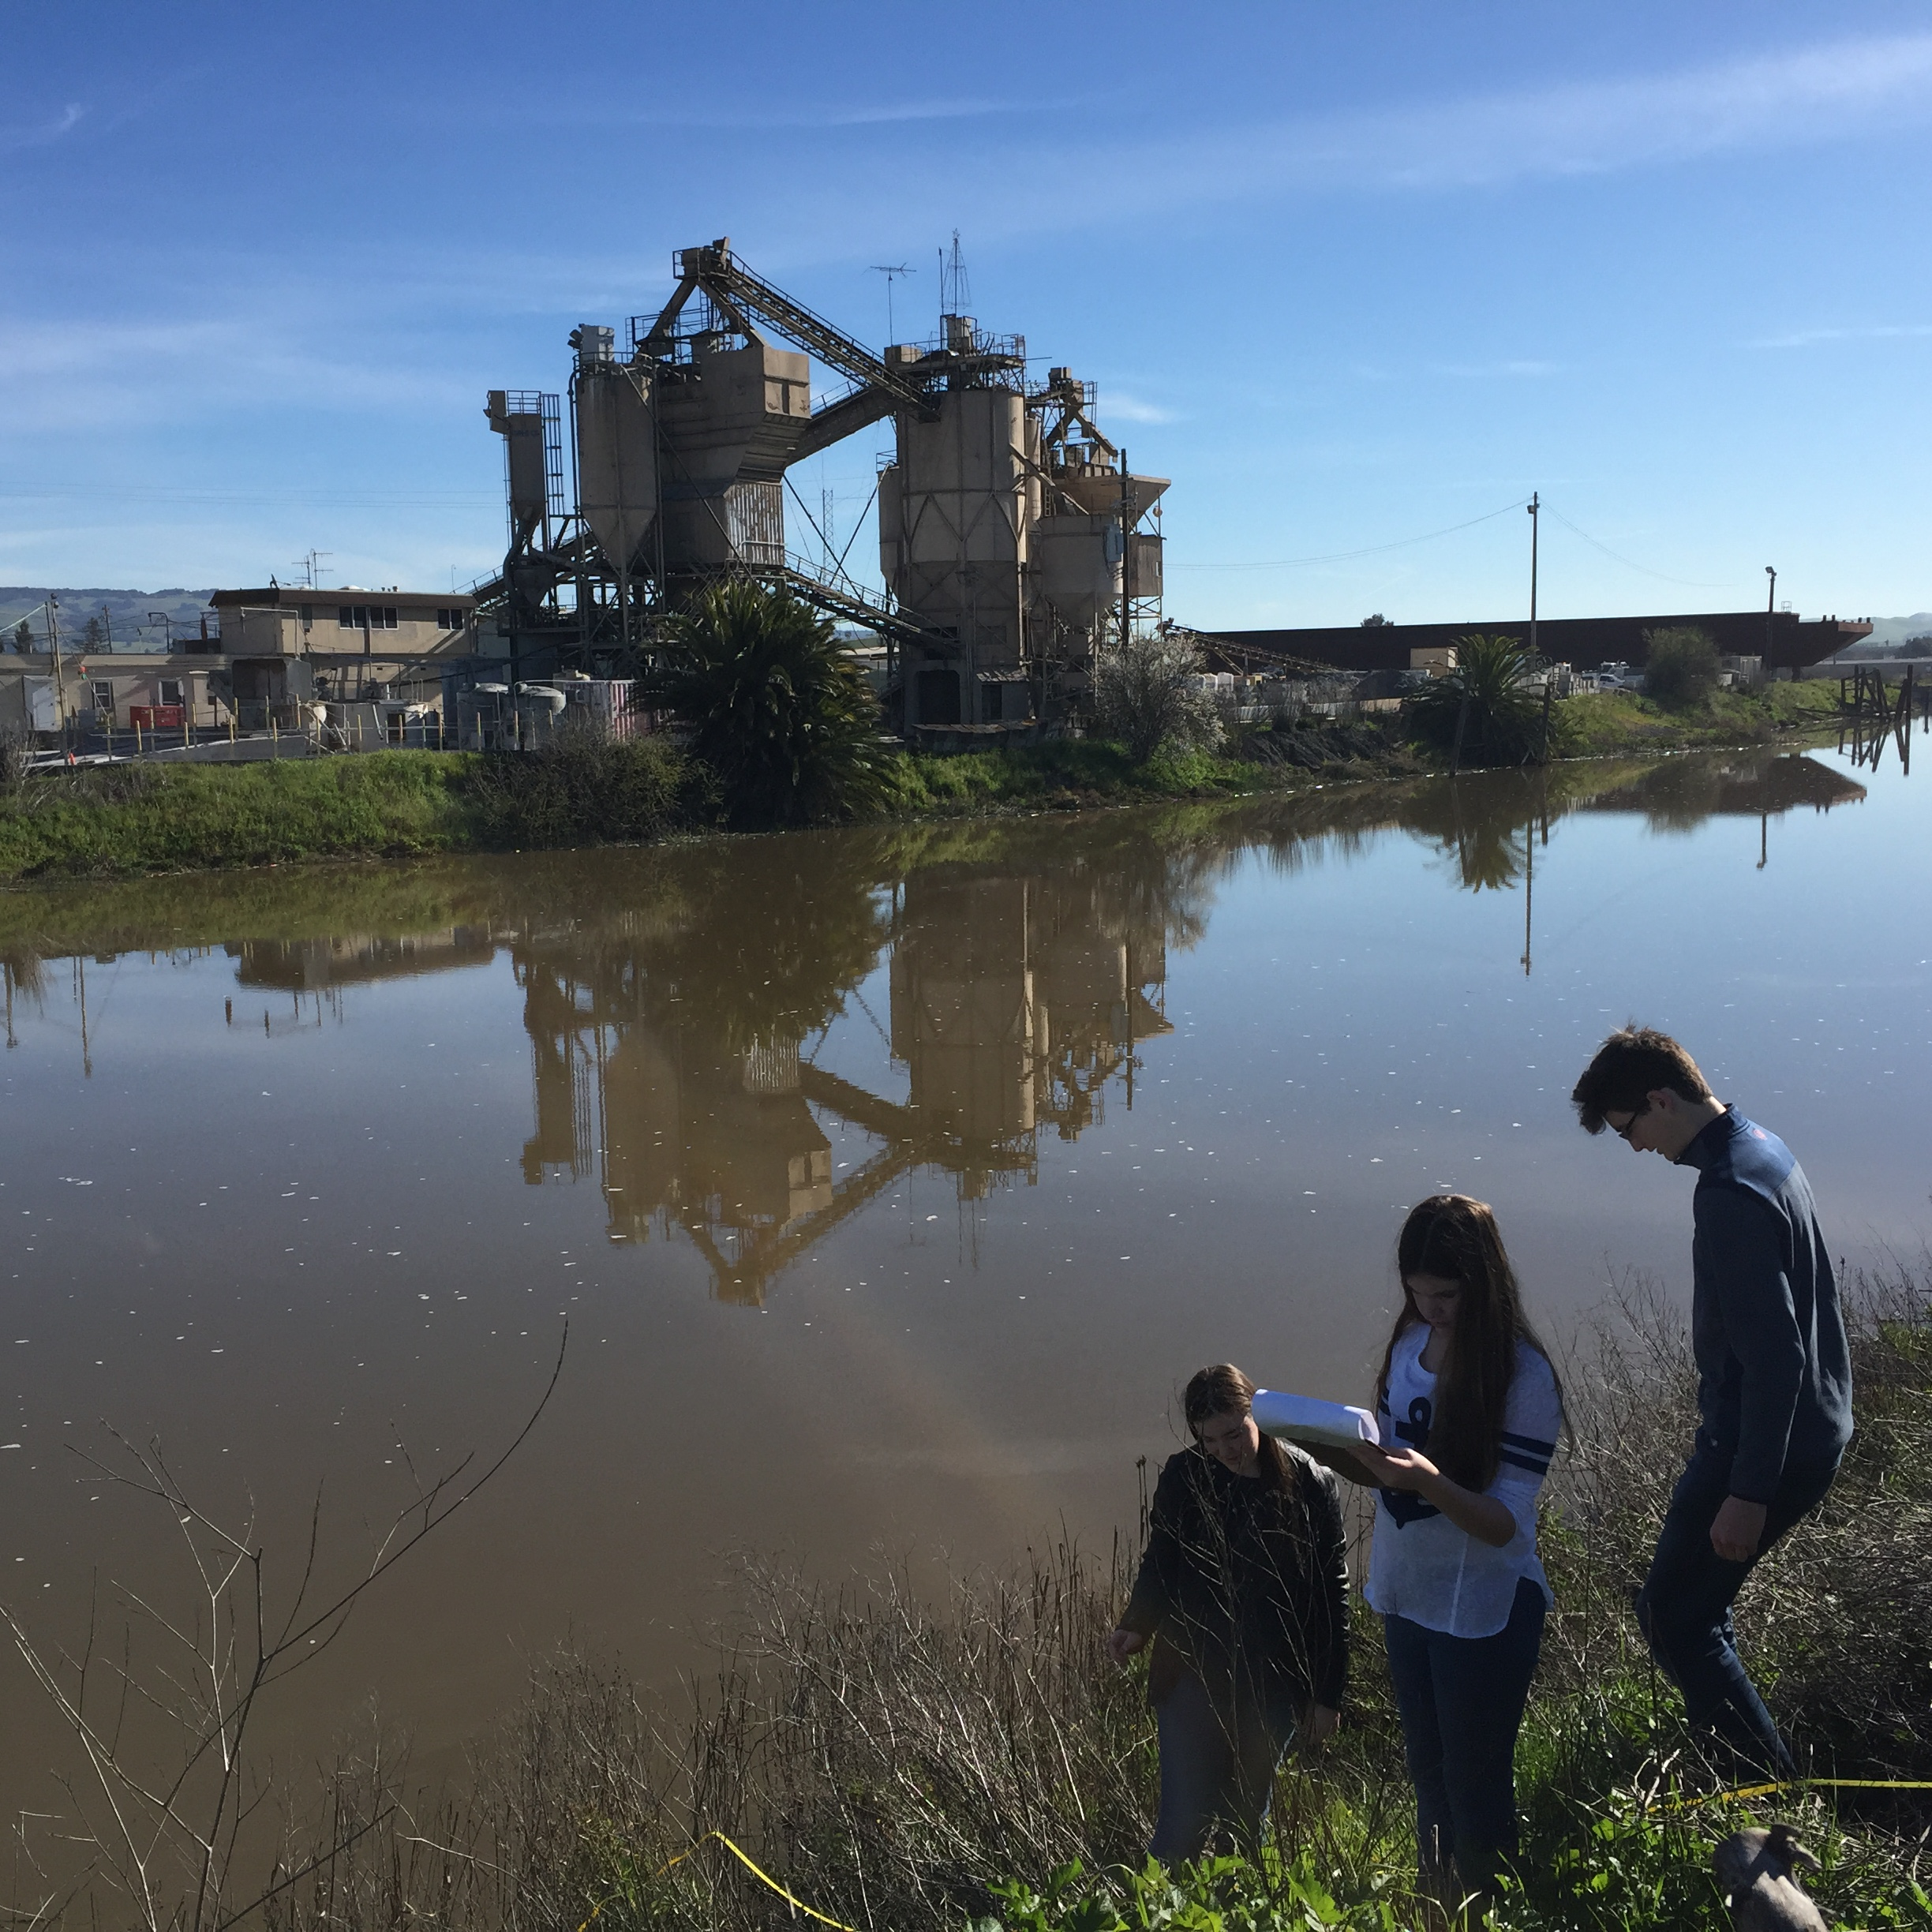 Students on a surveying trip in Steamer Landing Park (Spring 2017).